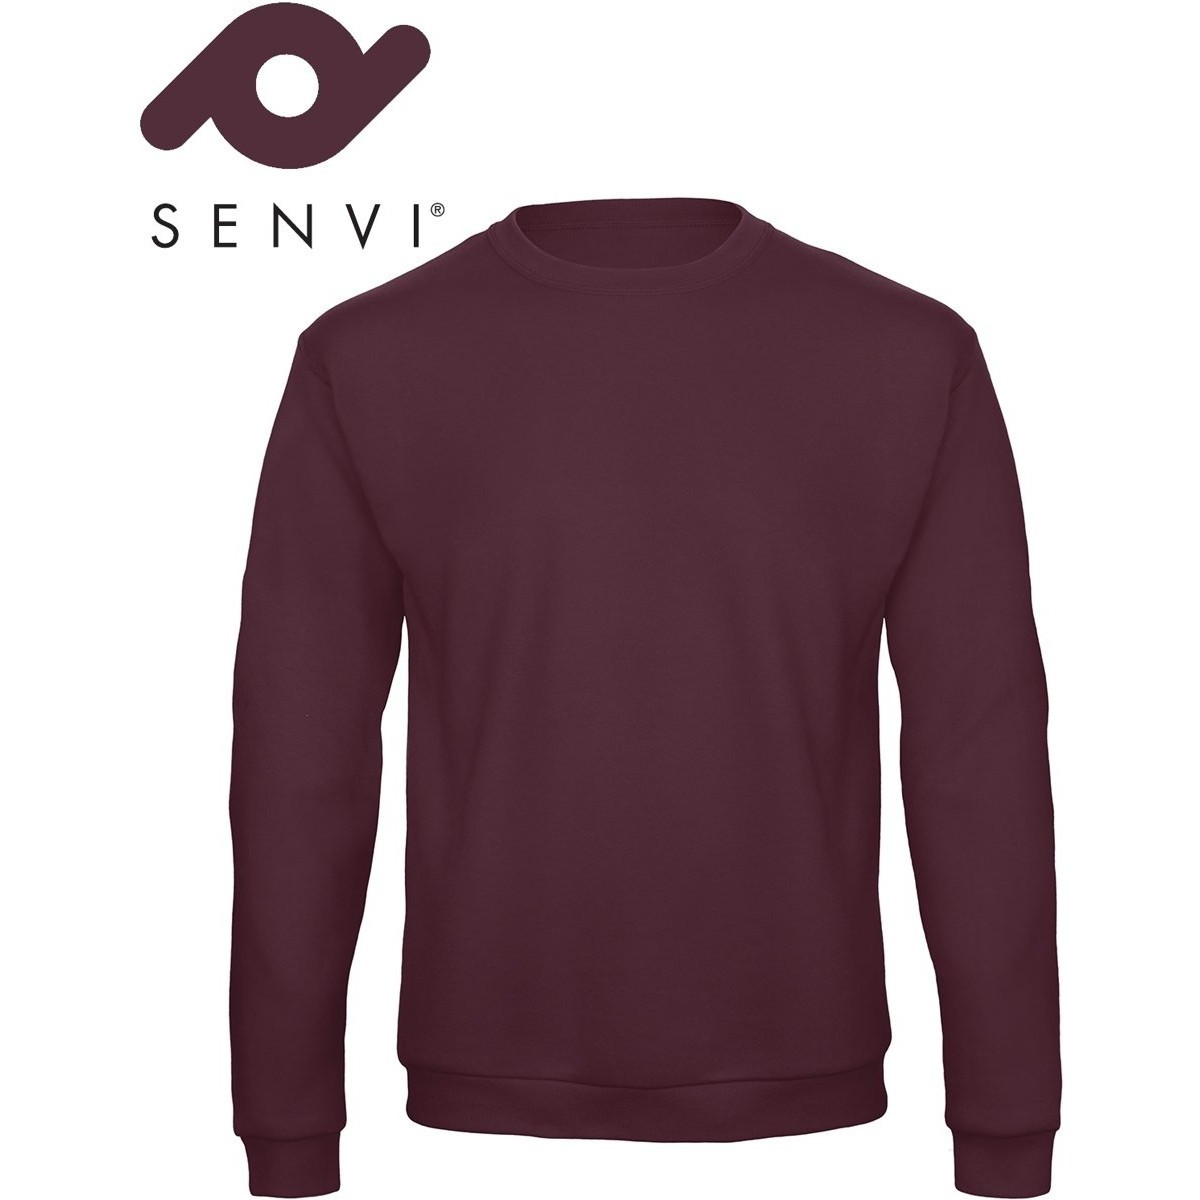 Senvi Basic Sweater (Kleur: Burgundy) - (Maat M)